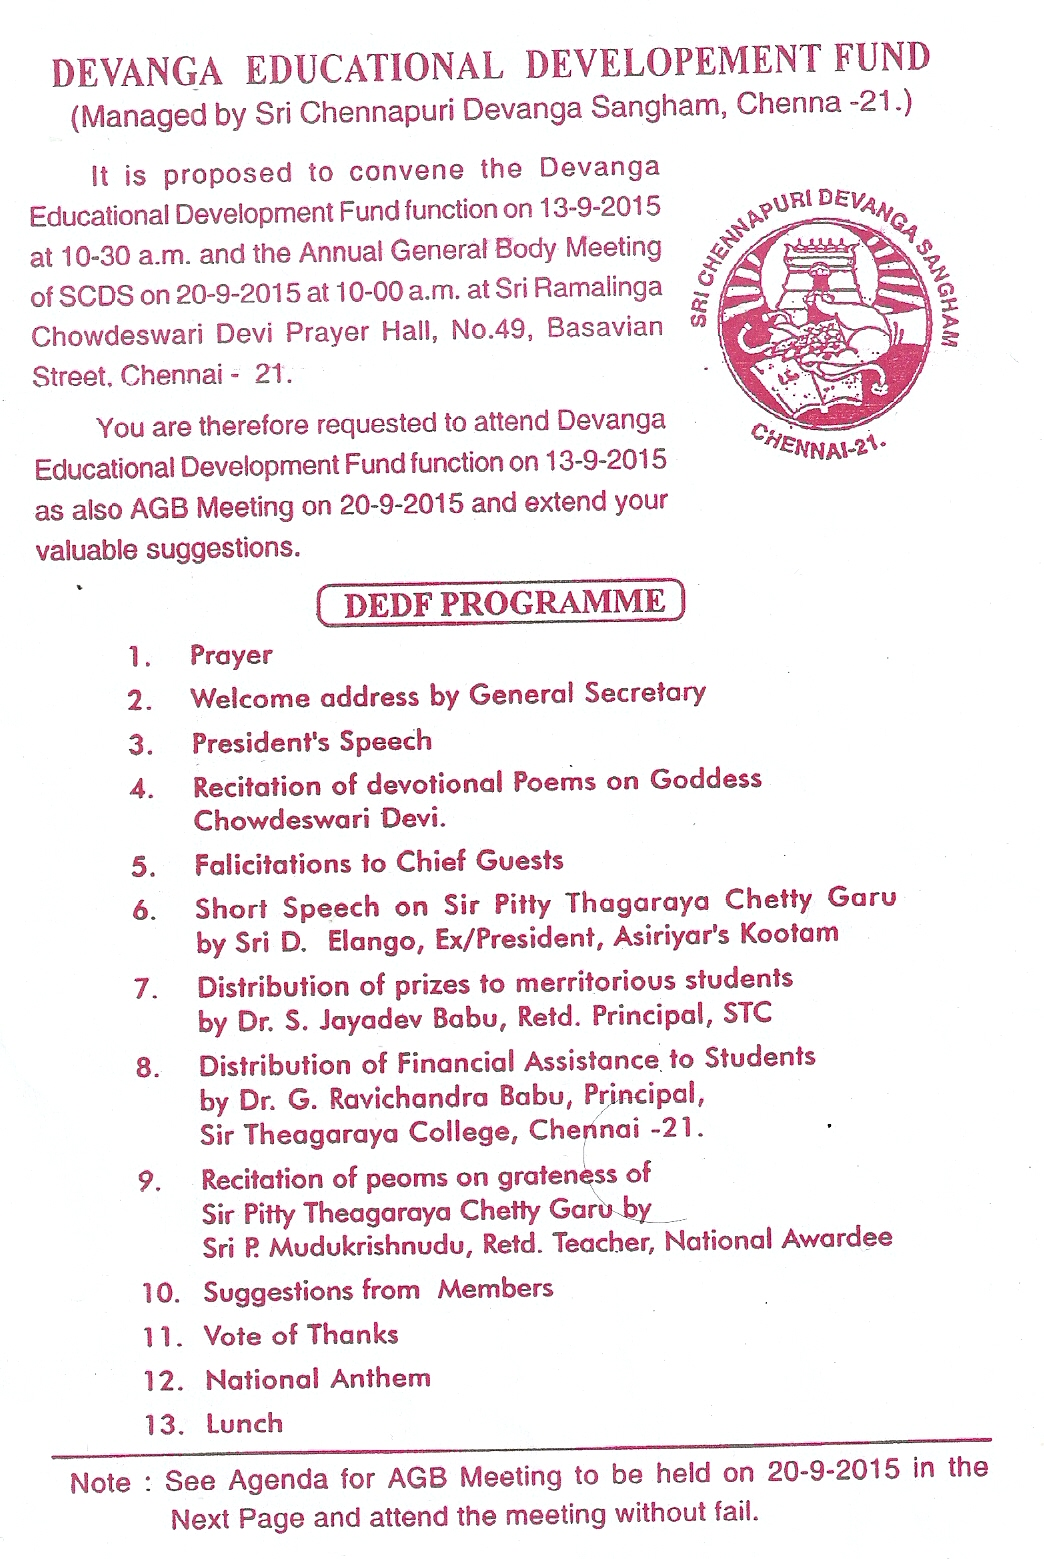 dedf programme for 2015